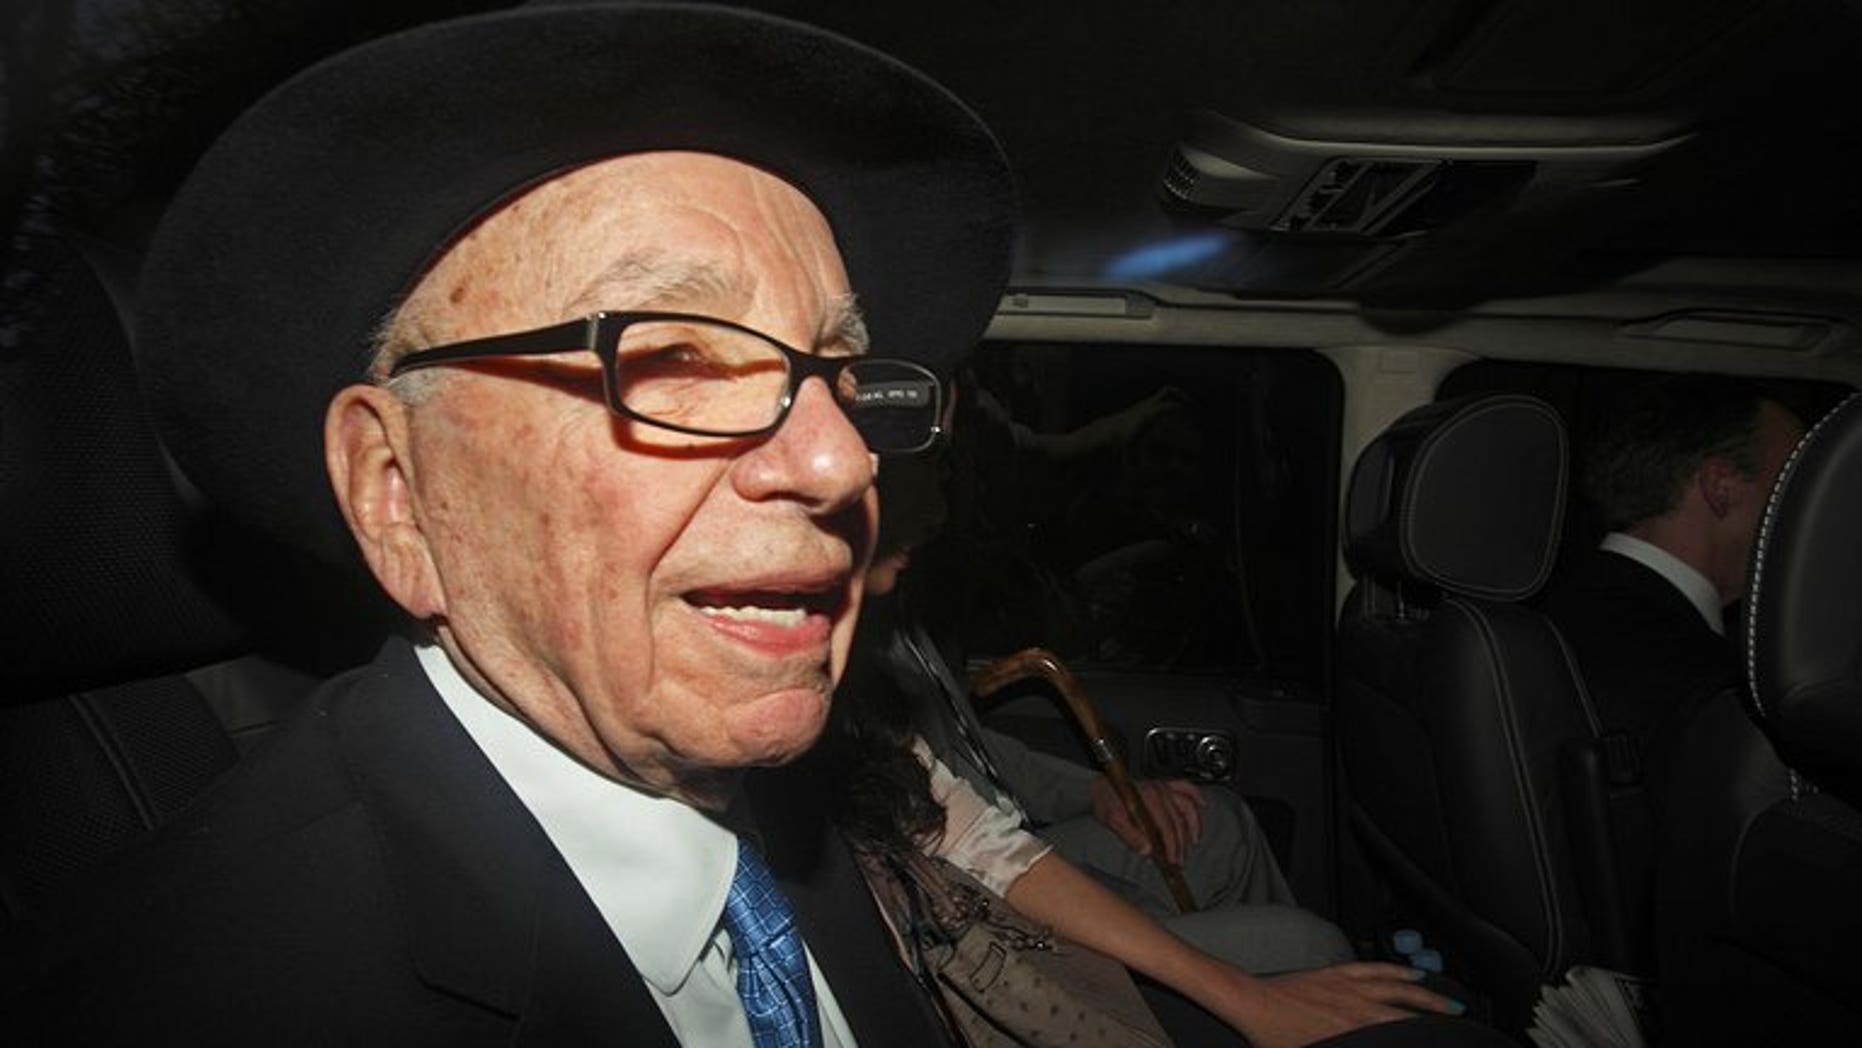 """Rupert Murdoch is seen in a car in central London on April 26, 2012. The News Corp chief called the police investigation into his News International journalists a """"disgrace"""" in a secret recording of talks with staff from the Sun newspaper, aired on British television."""